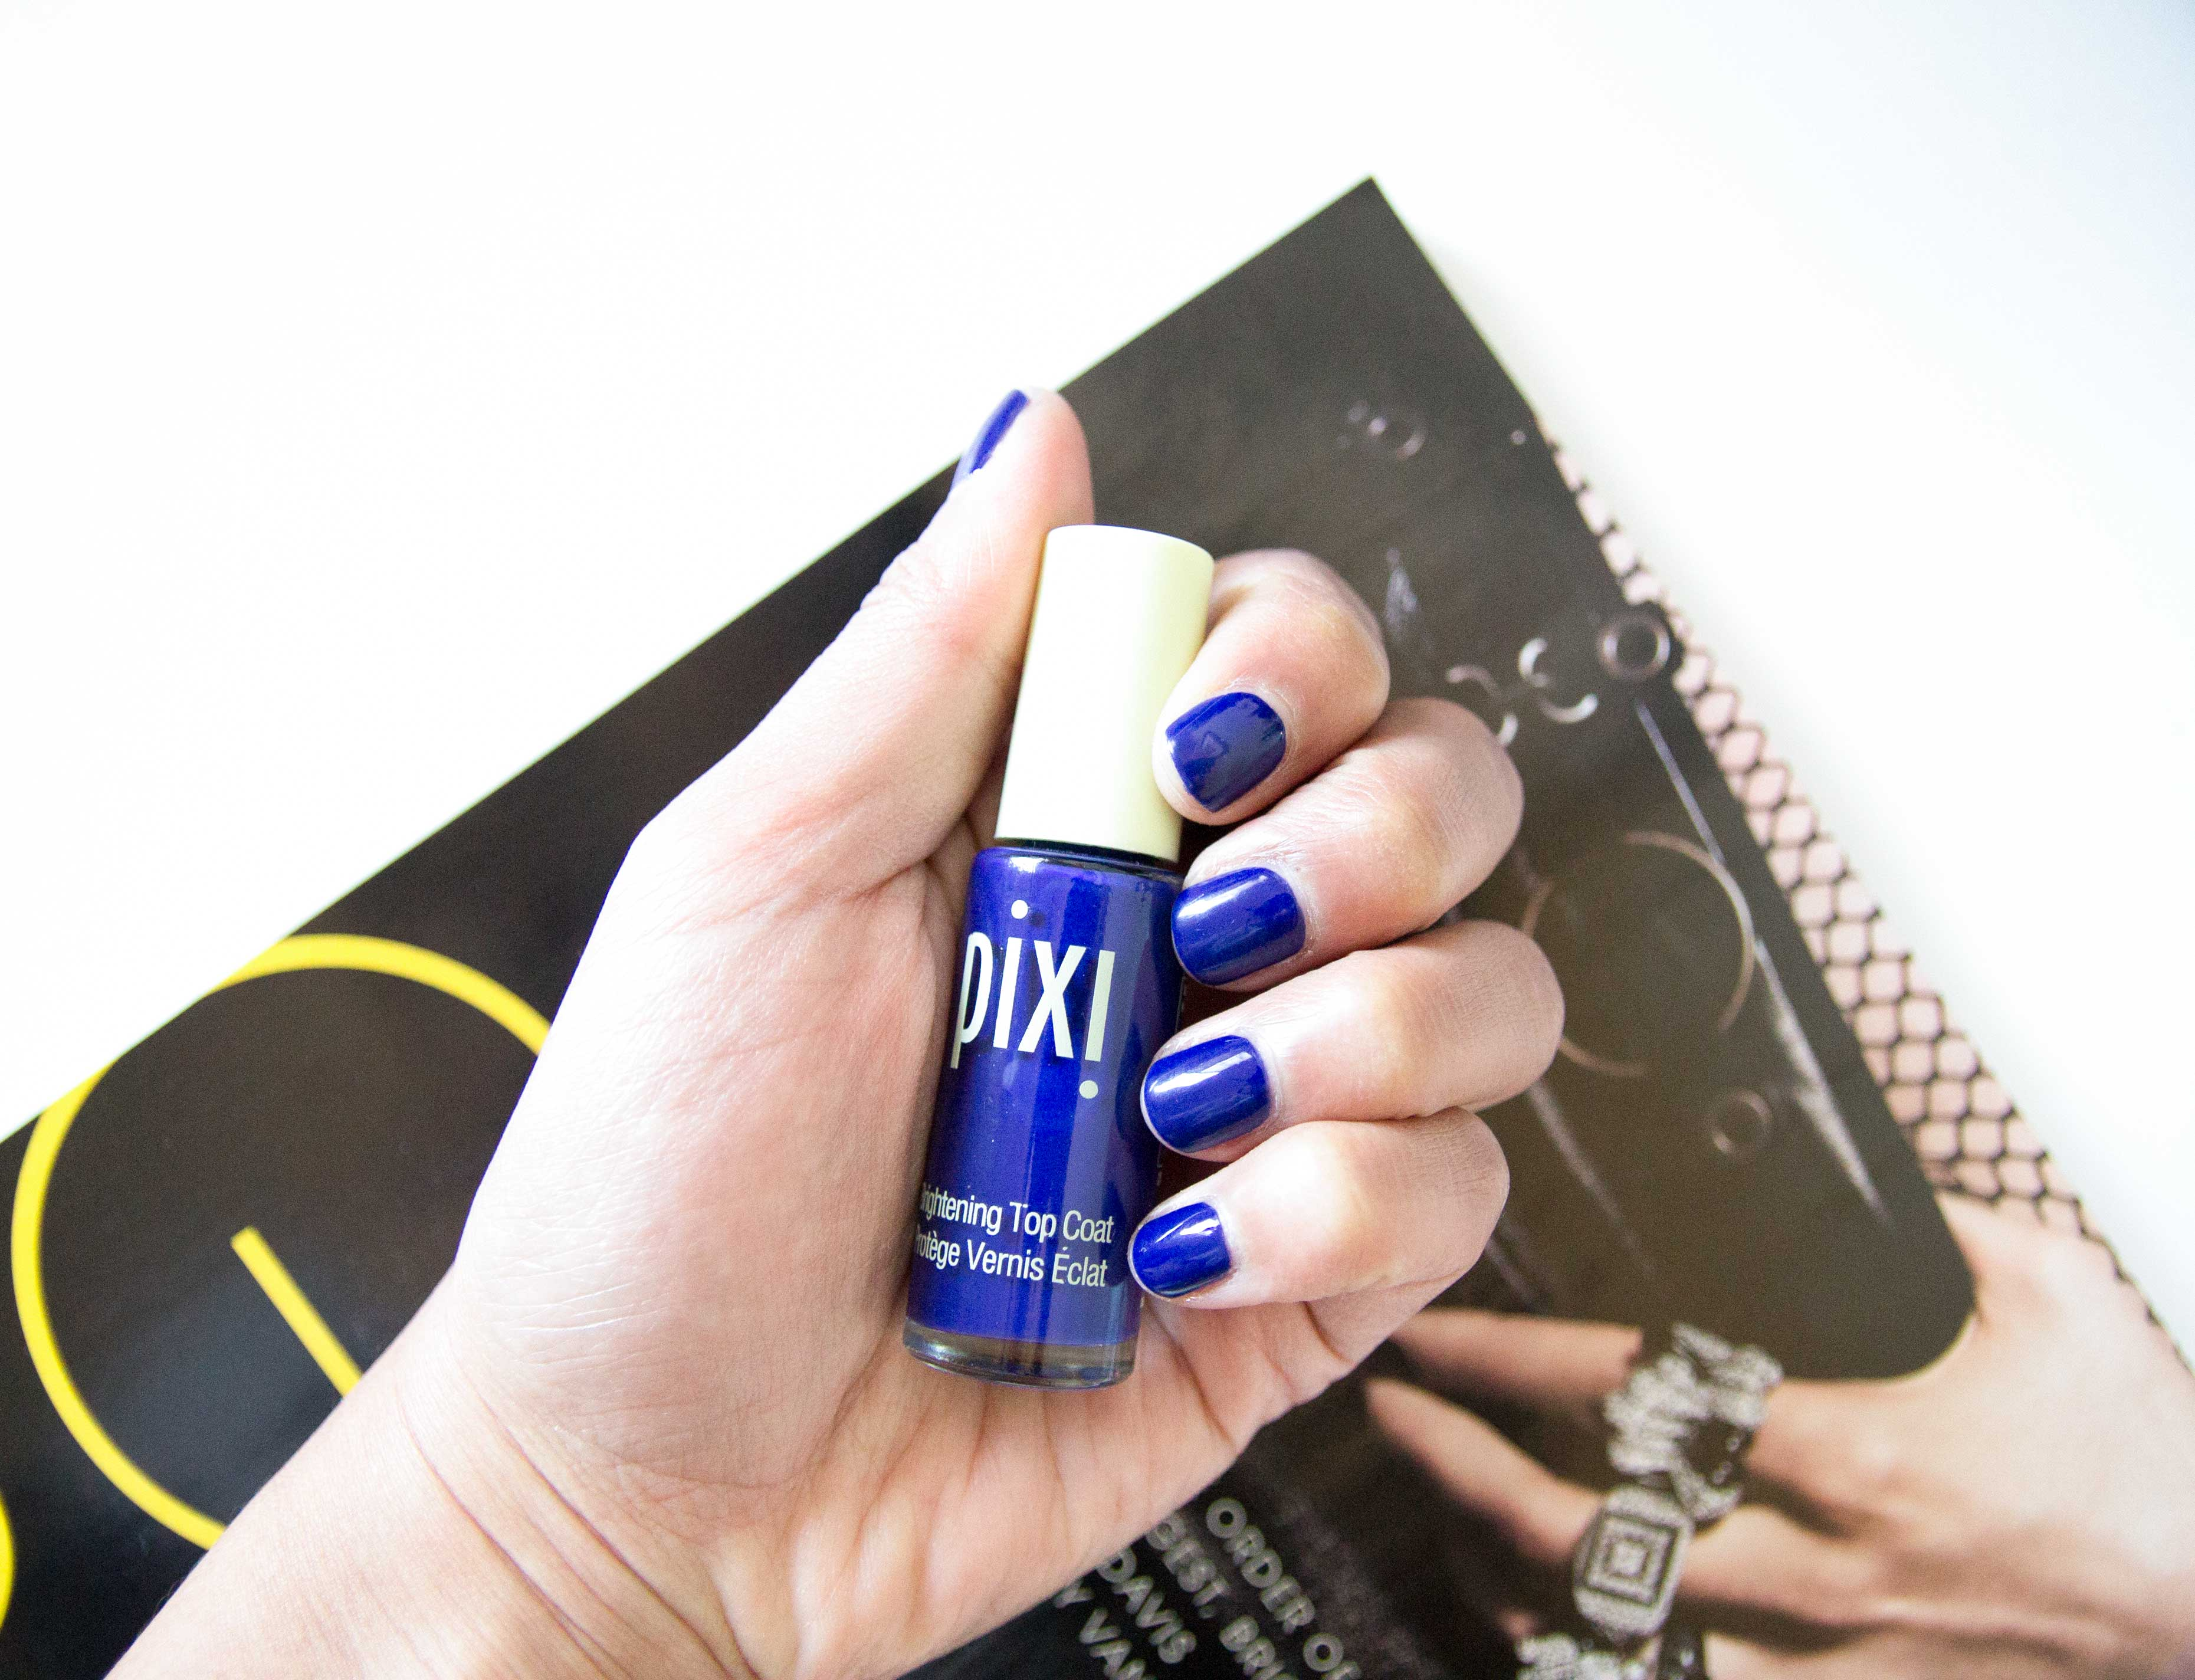 Pixi Amethyst Amore Nail Polish Review & Swatches